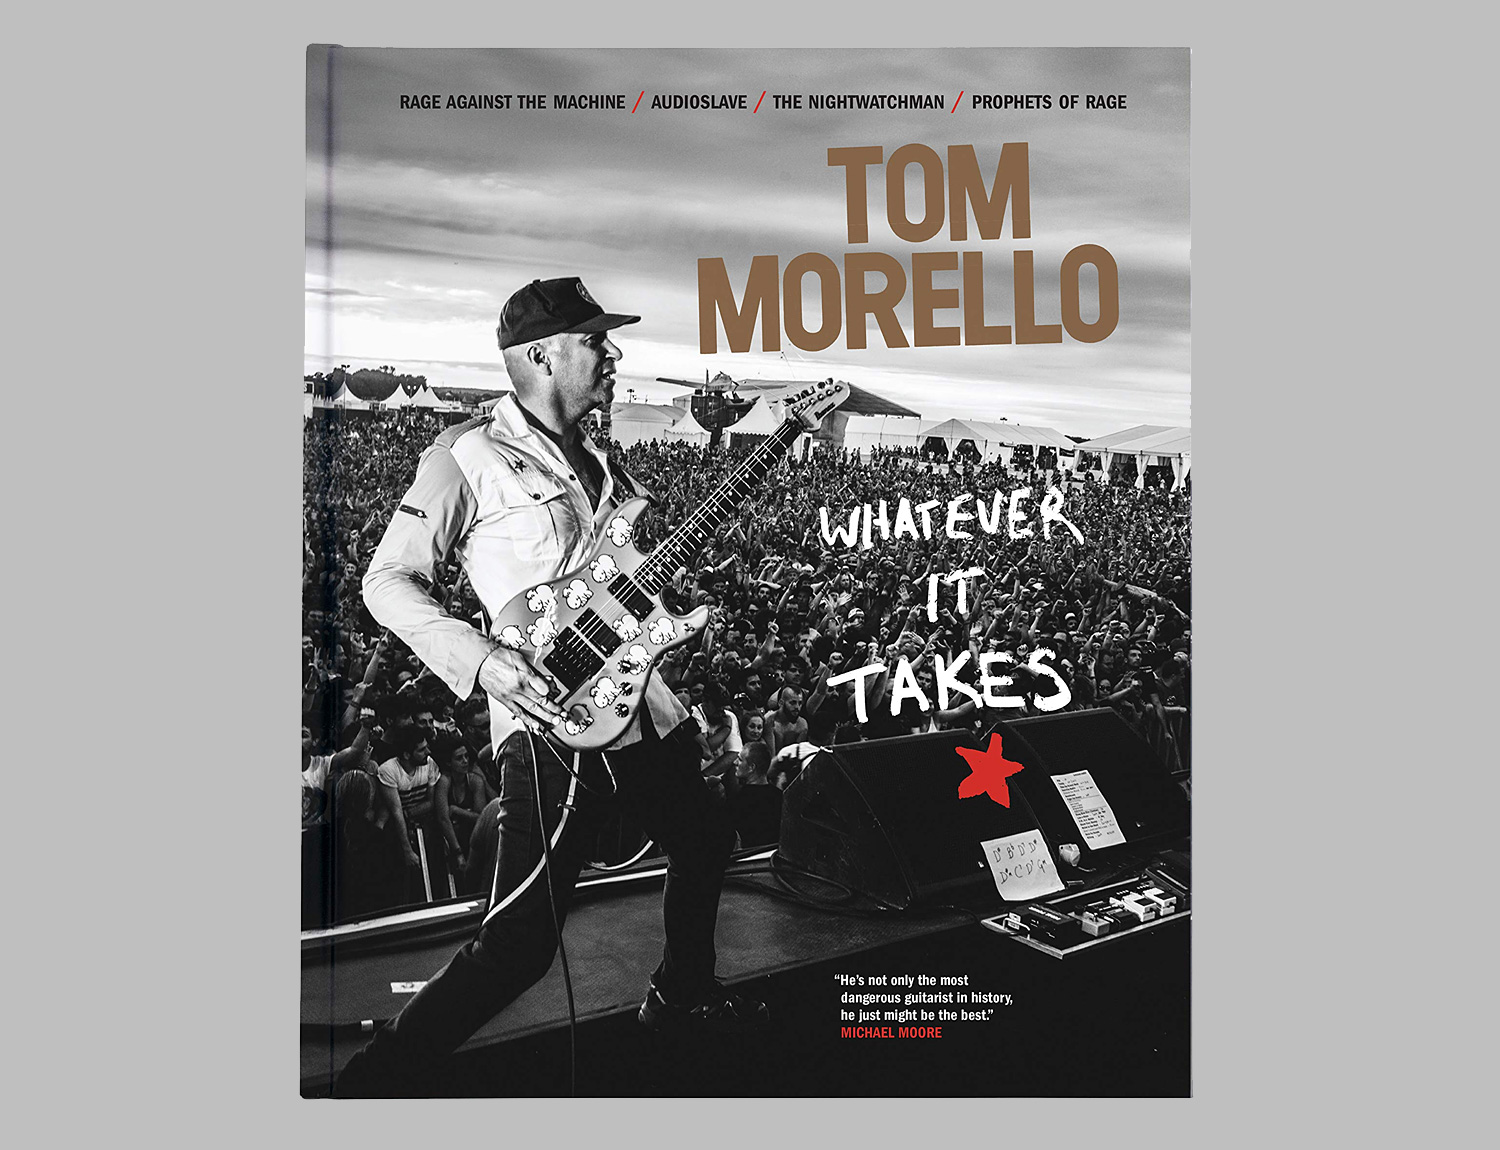 Whatever It Takes: Tom Morello Biography at werd.com